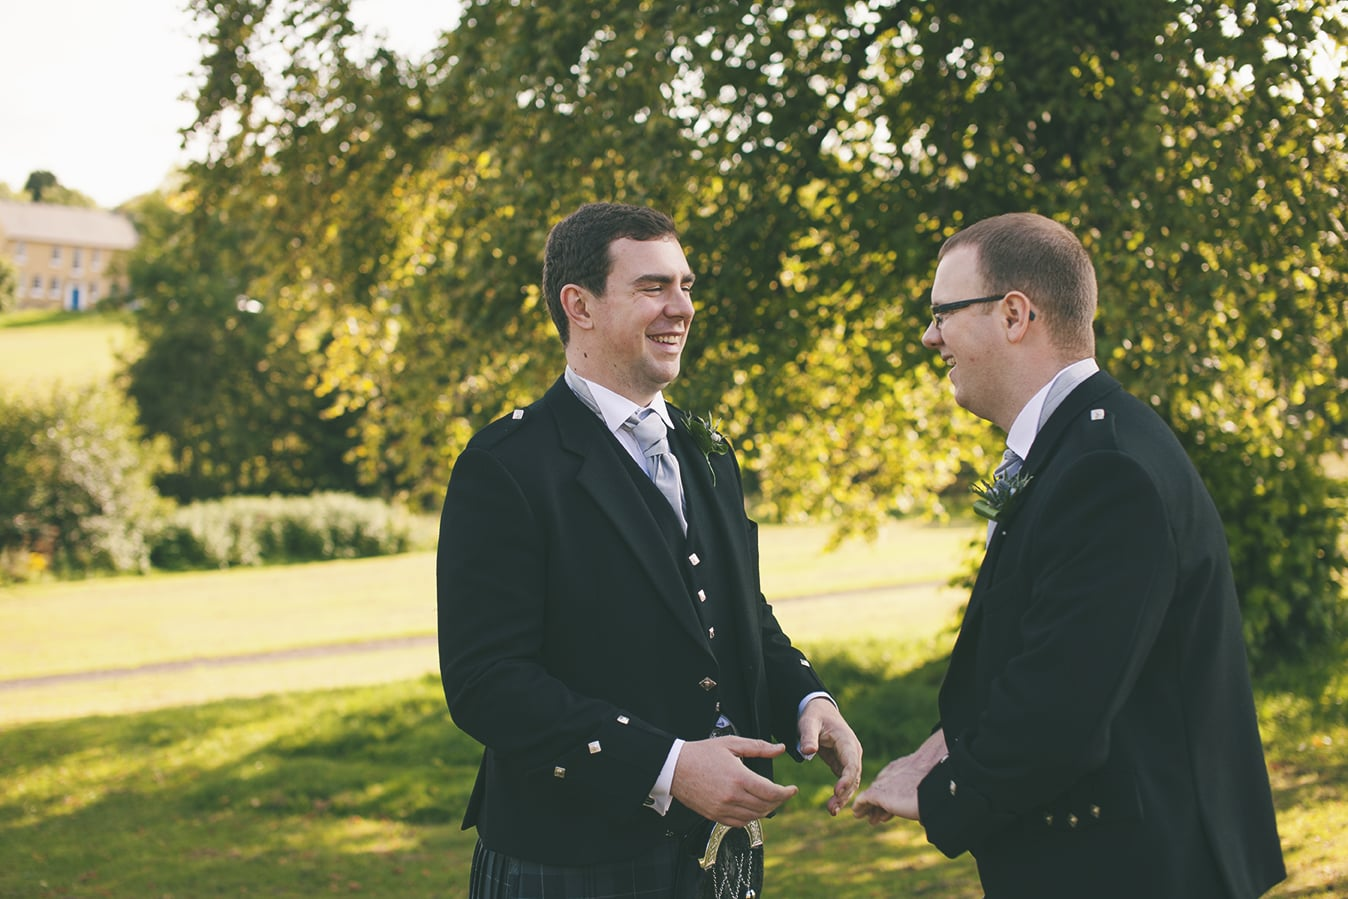 relaxed_wedding_photography_scotland (30).jpg